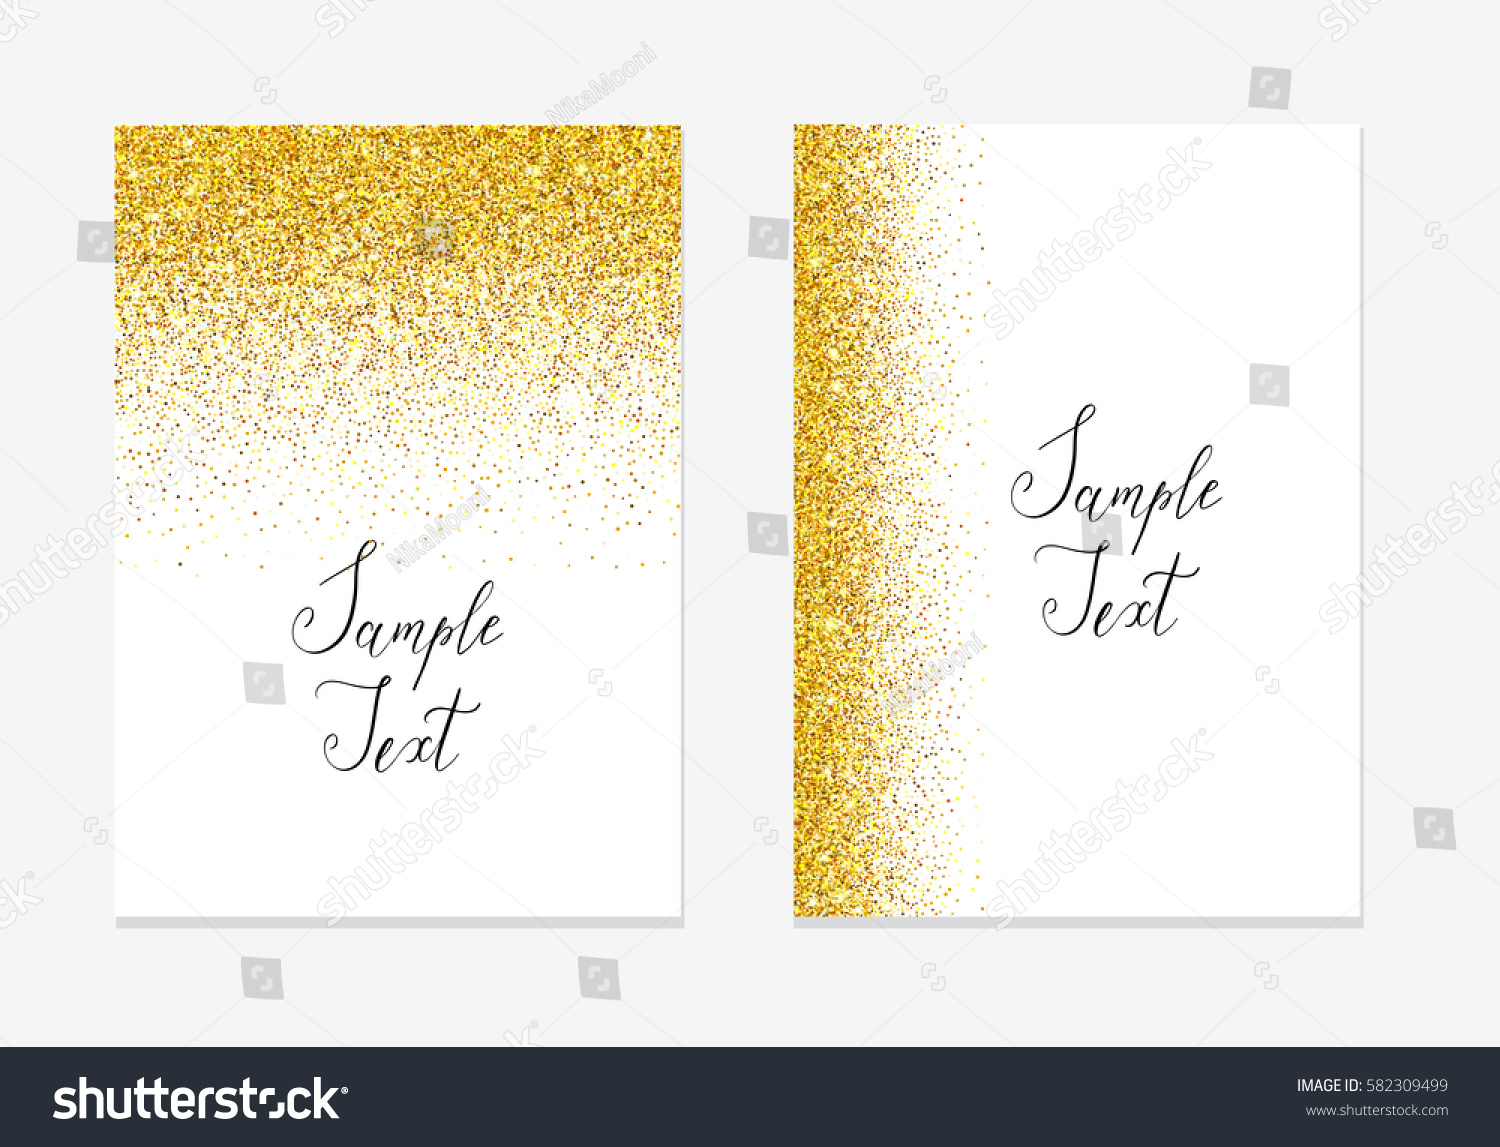 Gold Sparkle New Year Border     Merry Christmas And Happy New Year 2018 gold sparkle new year border